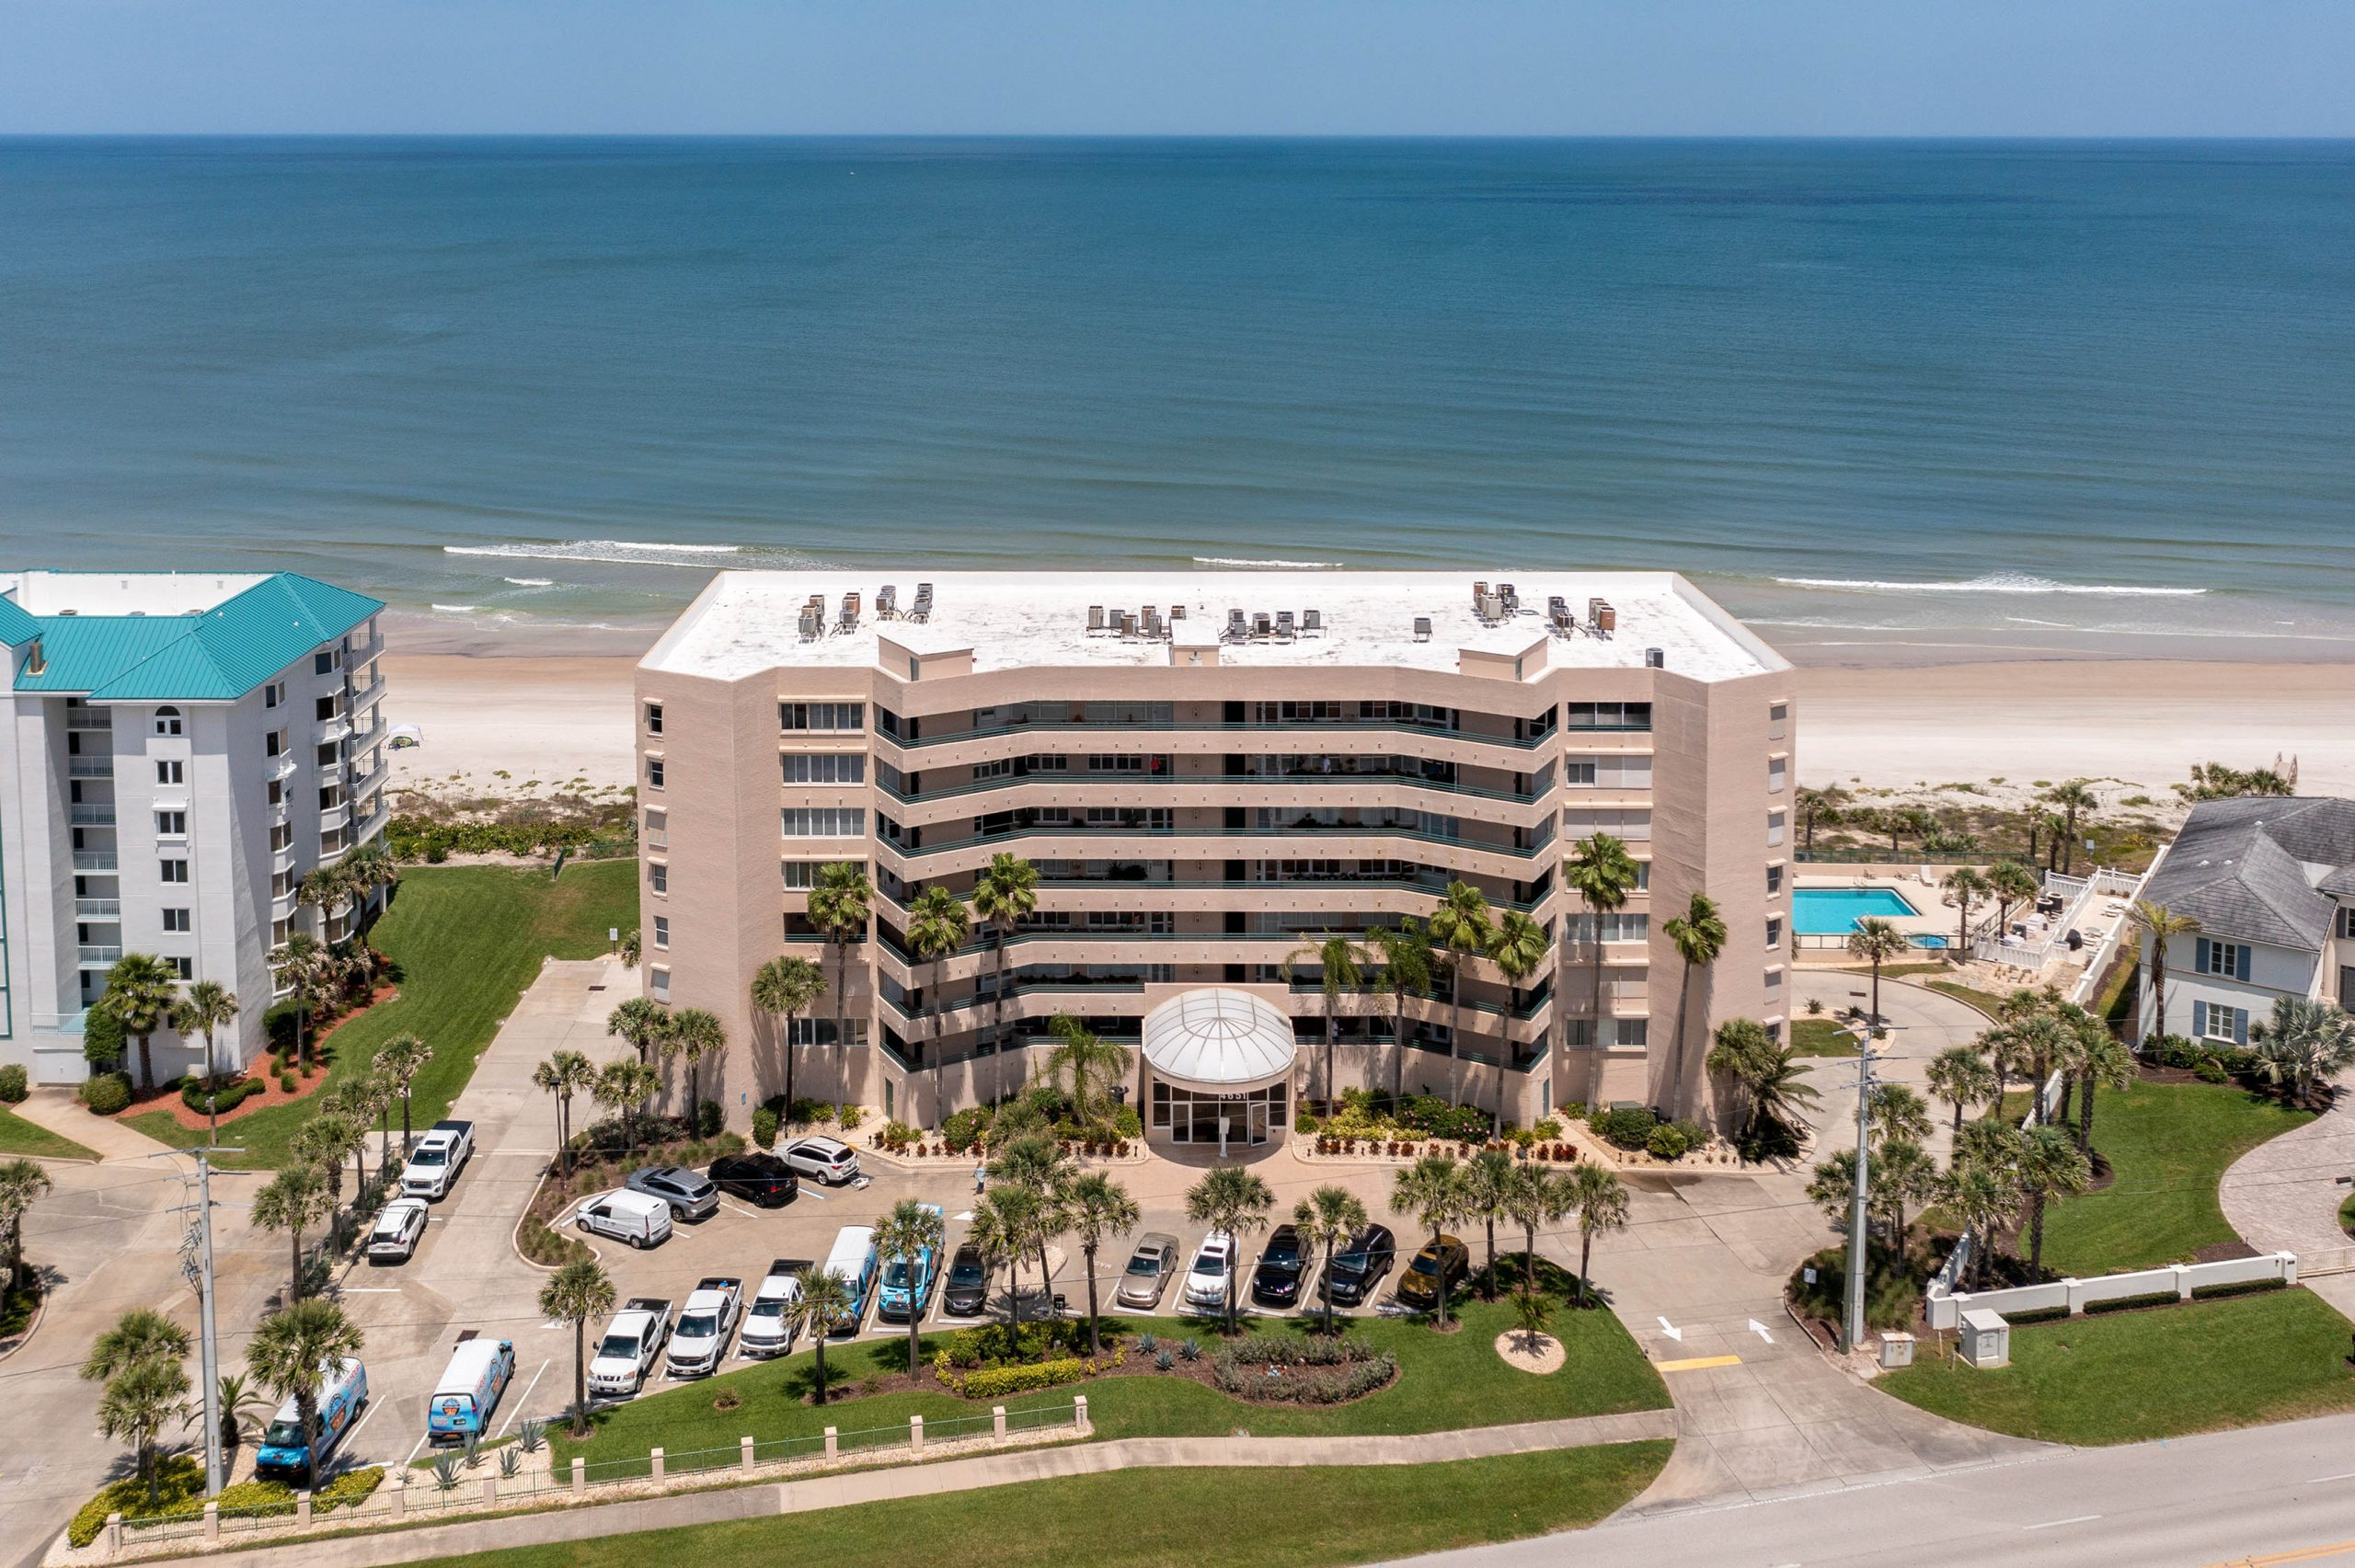 4651 S Atlantic Ave, Unit #602, Ponce Inlet